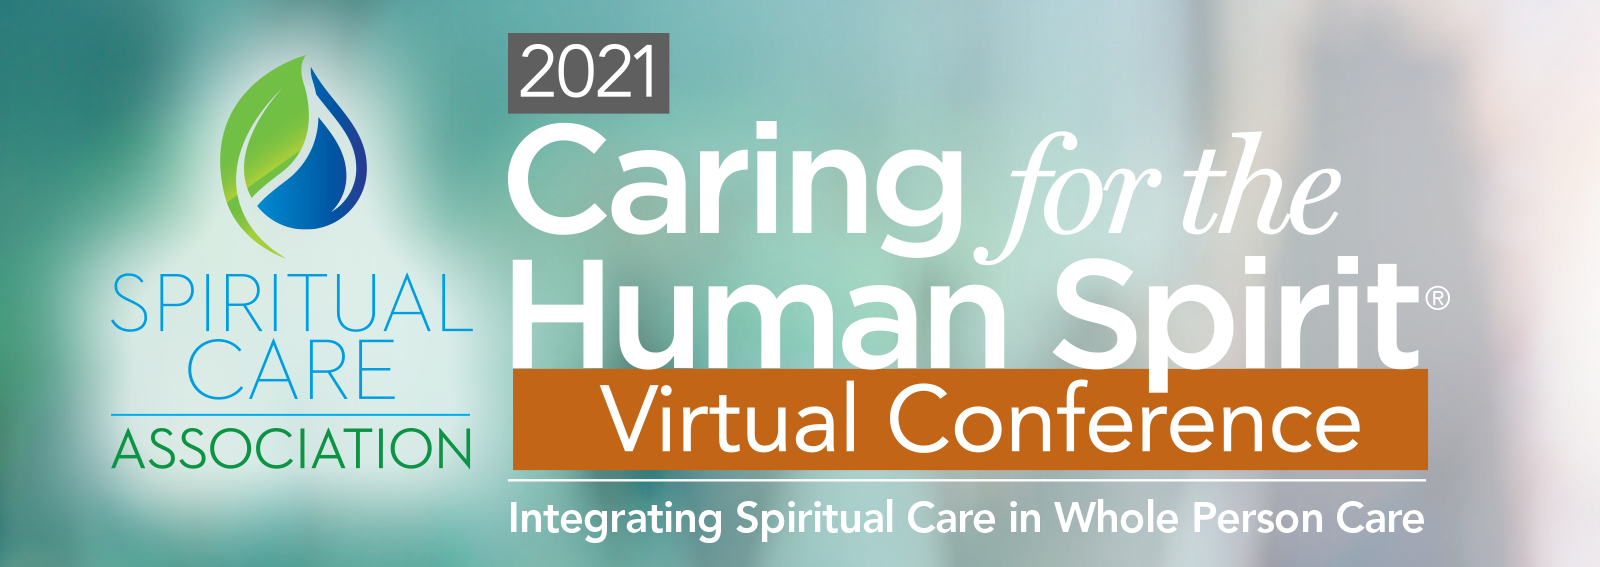 Caring for the Human Spirit Conference Westberg Symposium - Spiritual Care Association